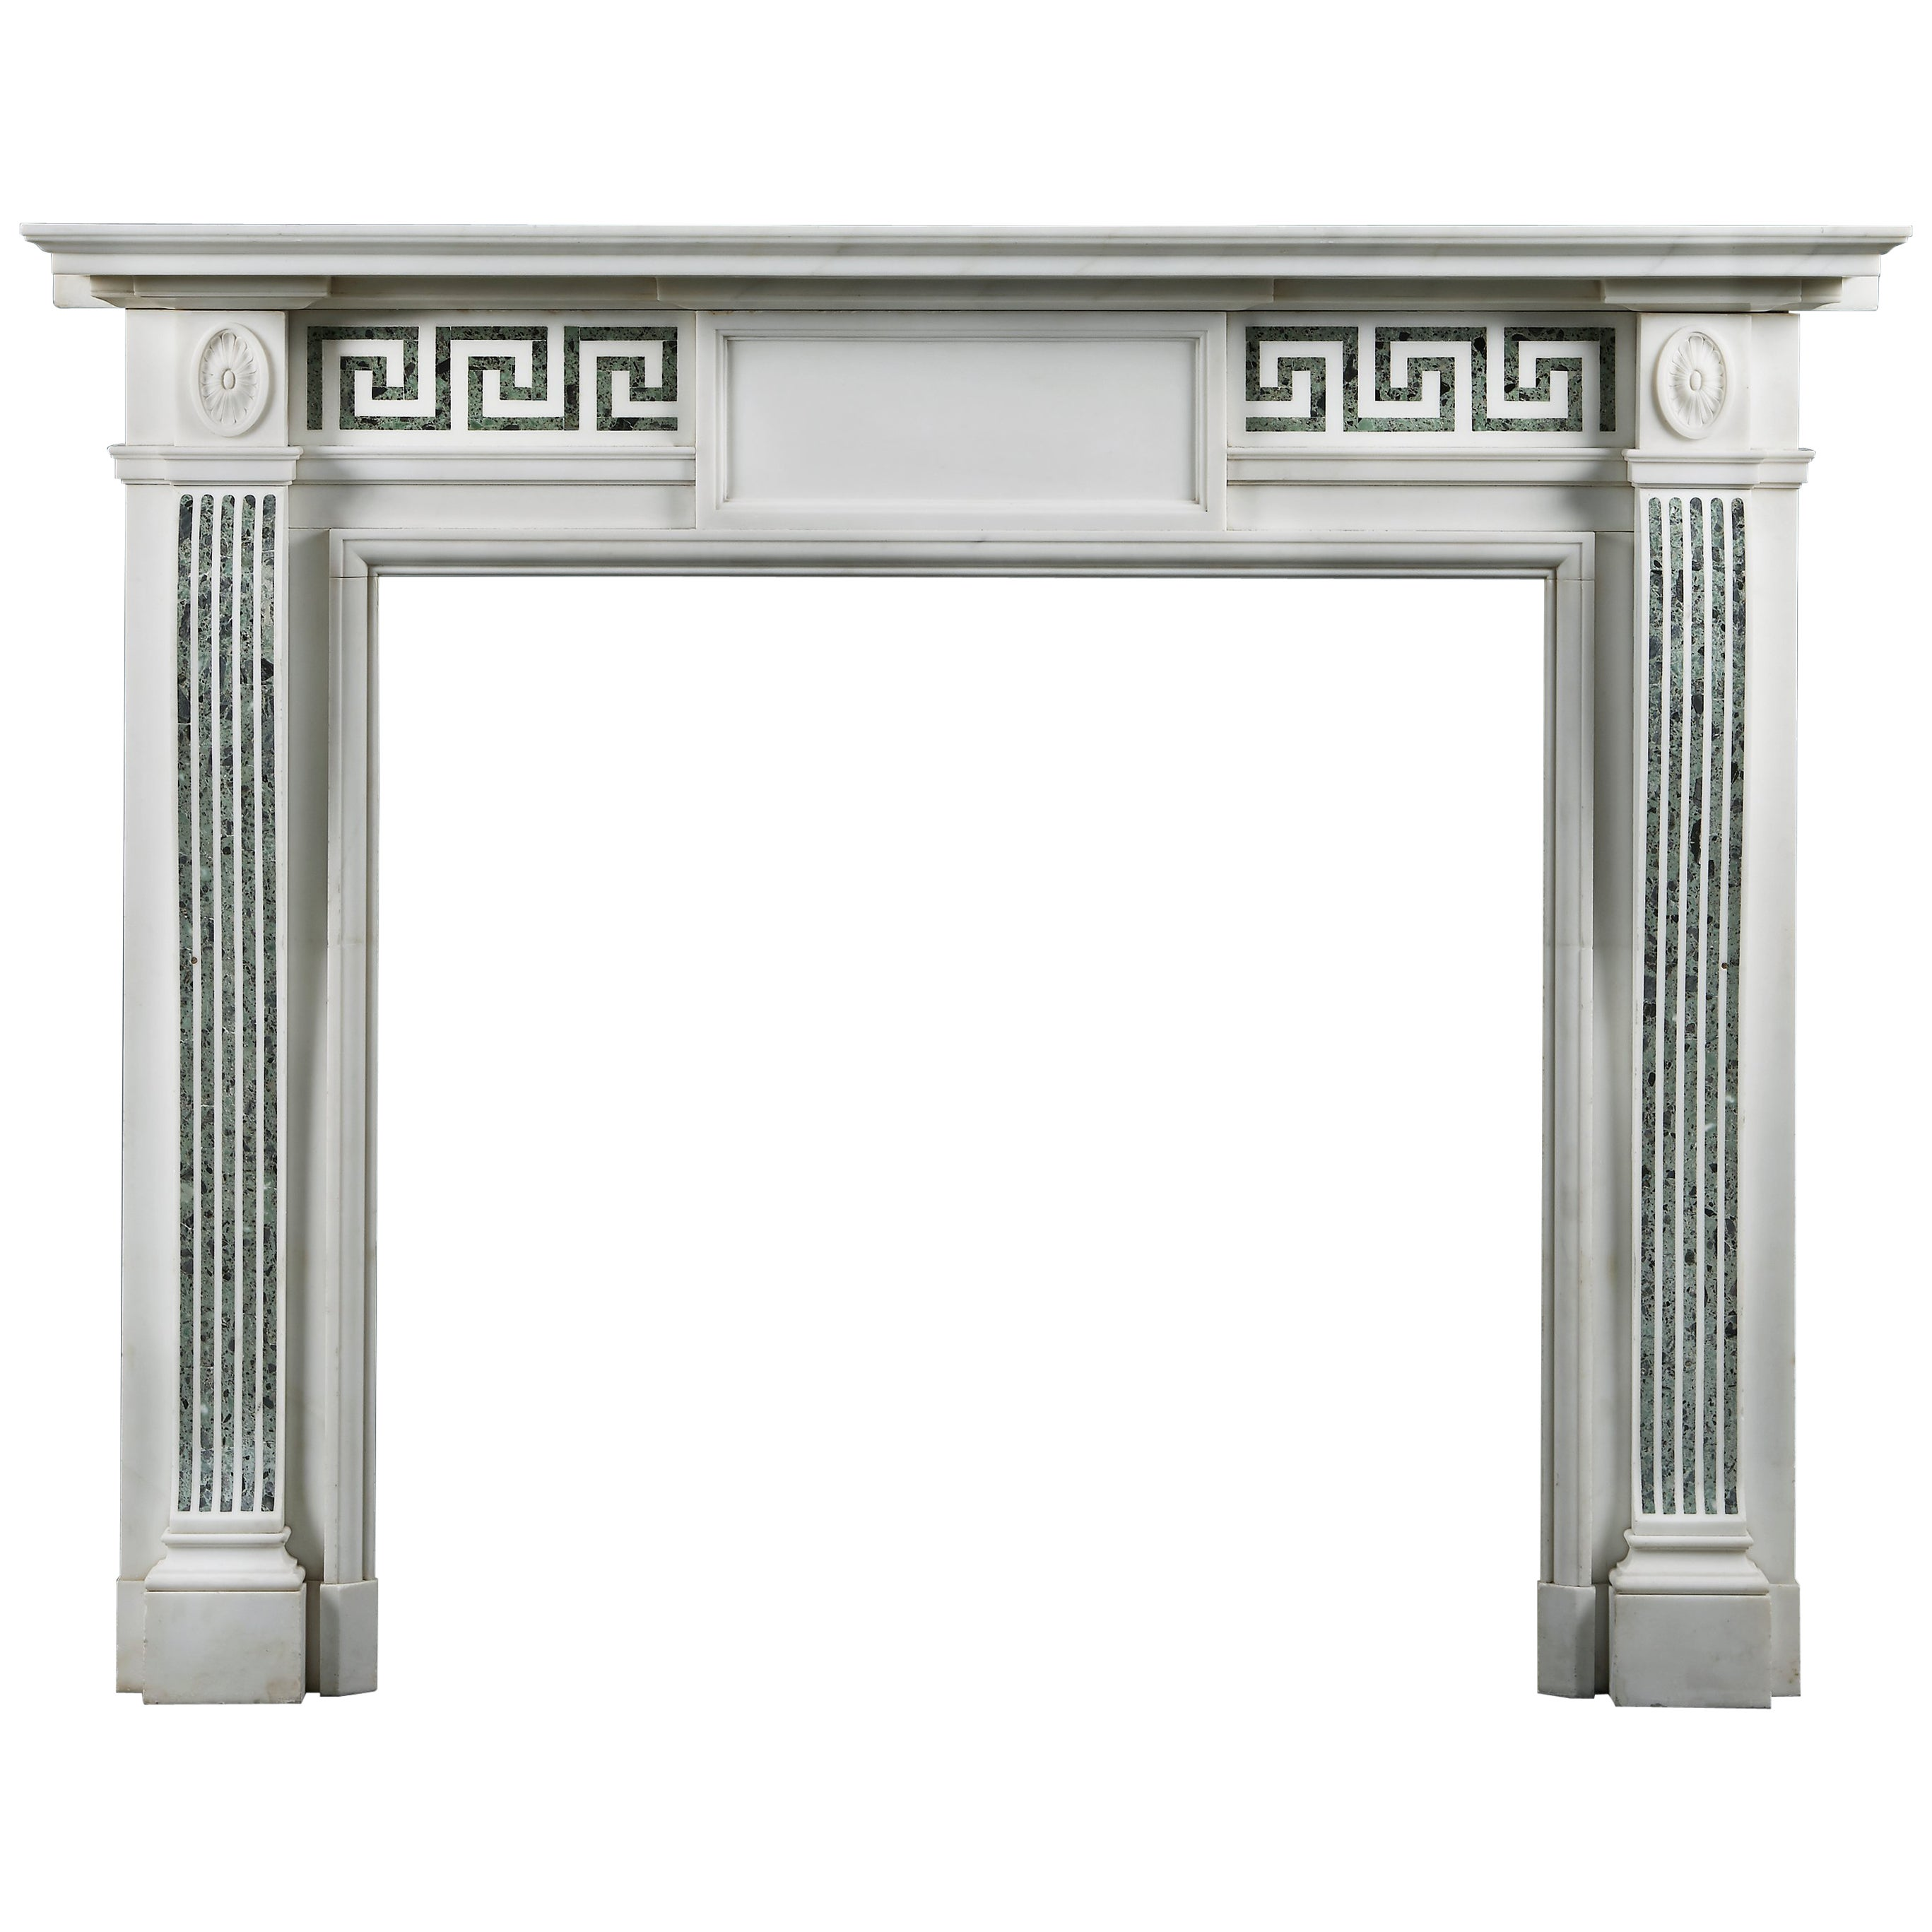 19th Century Statuary and Antico Verde Marble Fireplace